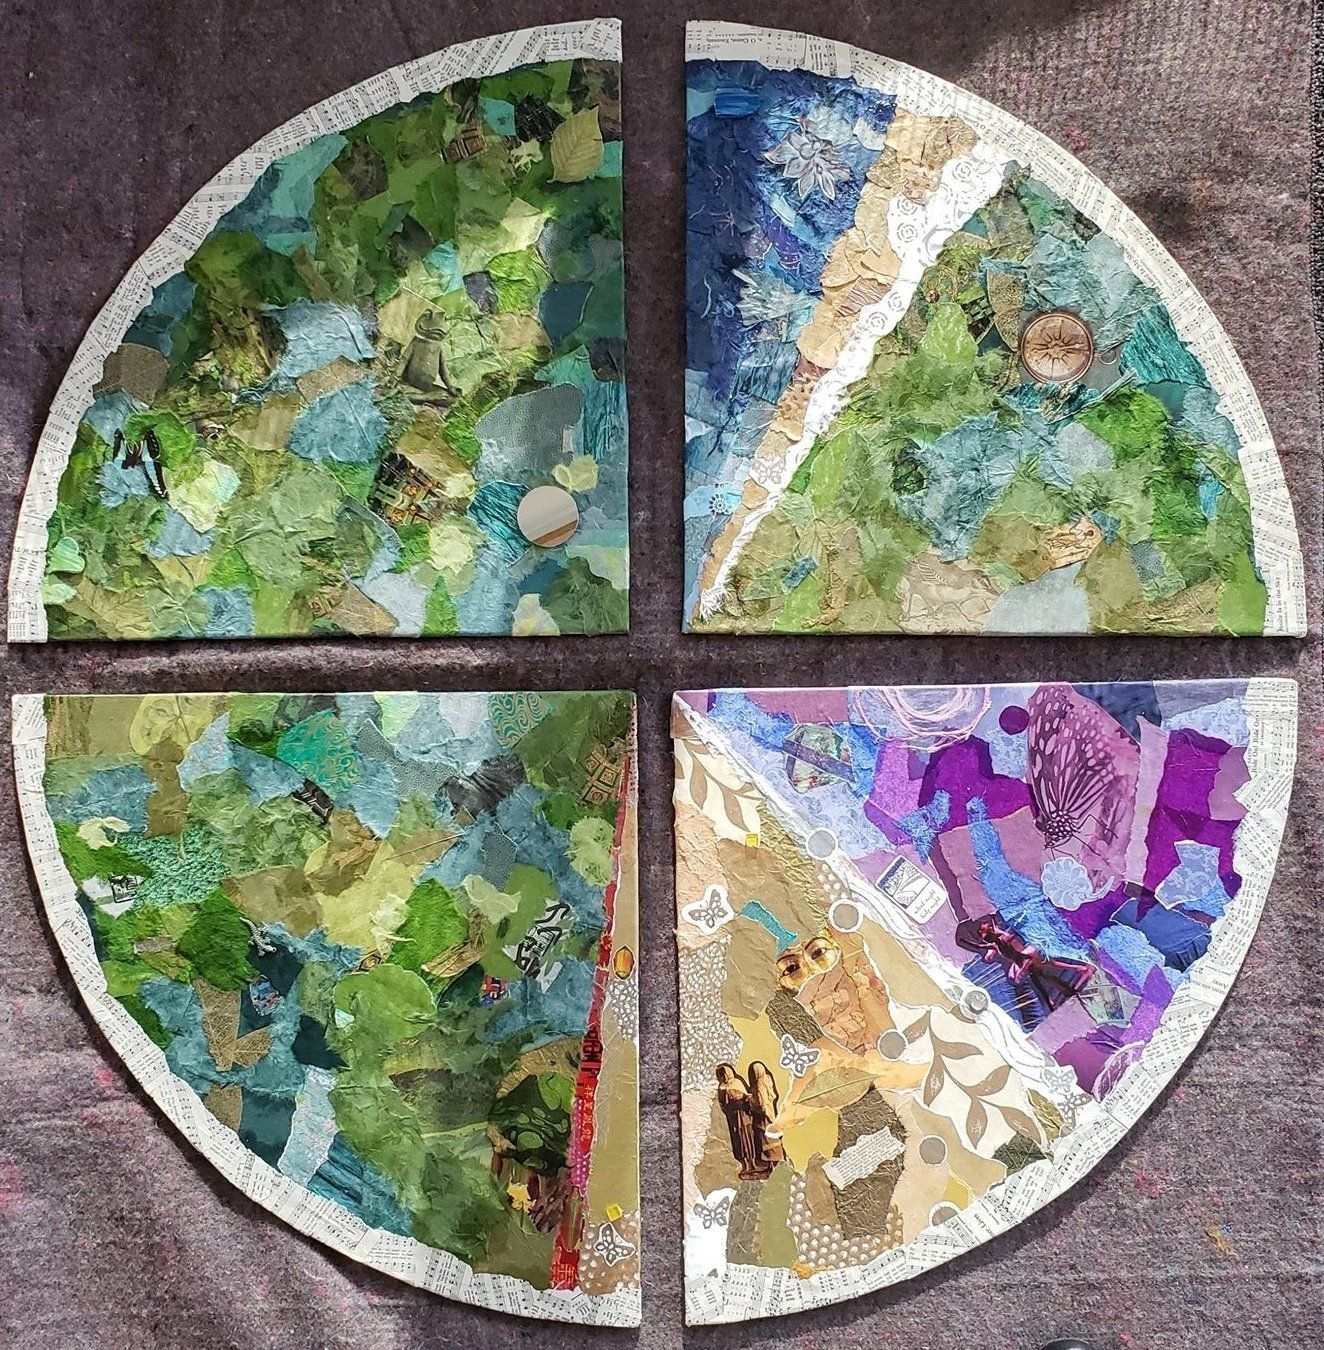 The Liturgical Seasons And Colors Of The Christian Year Decoupaged Onto Canvas. Clockwise From